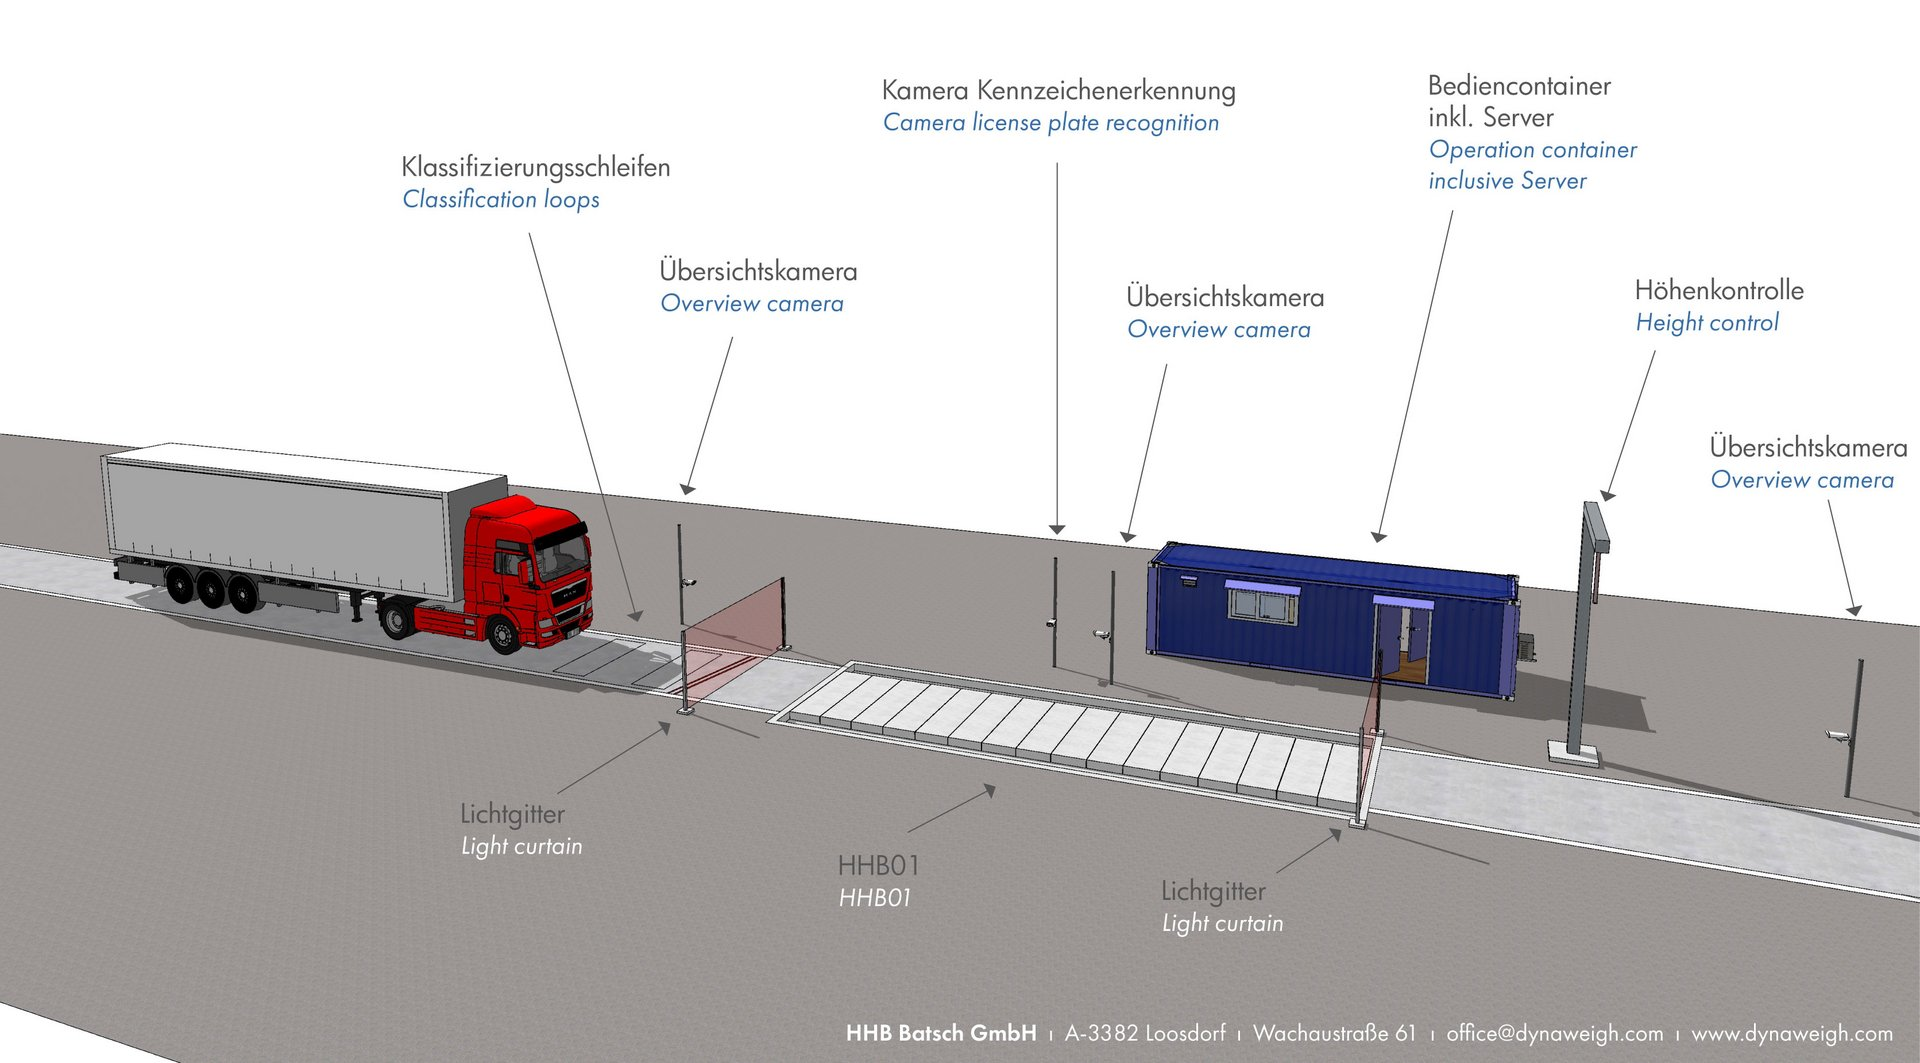 HHB01 - 16-cell automated weighbridge